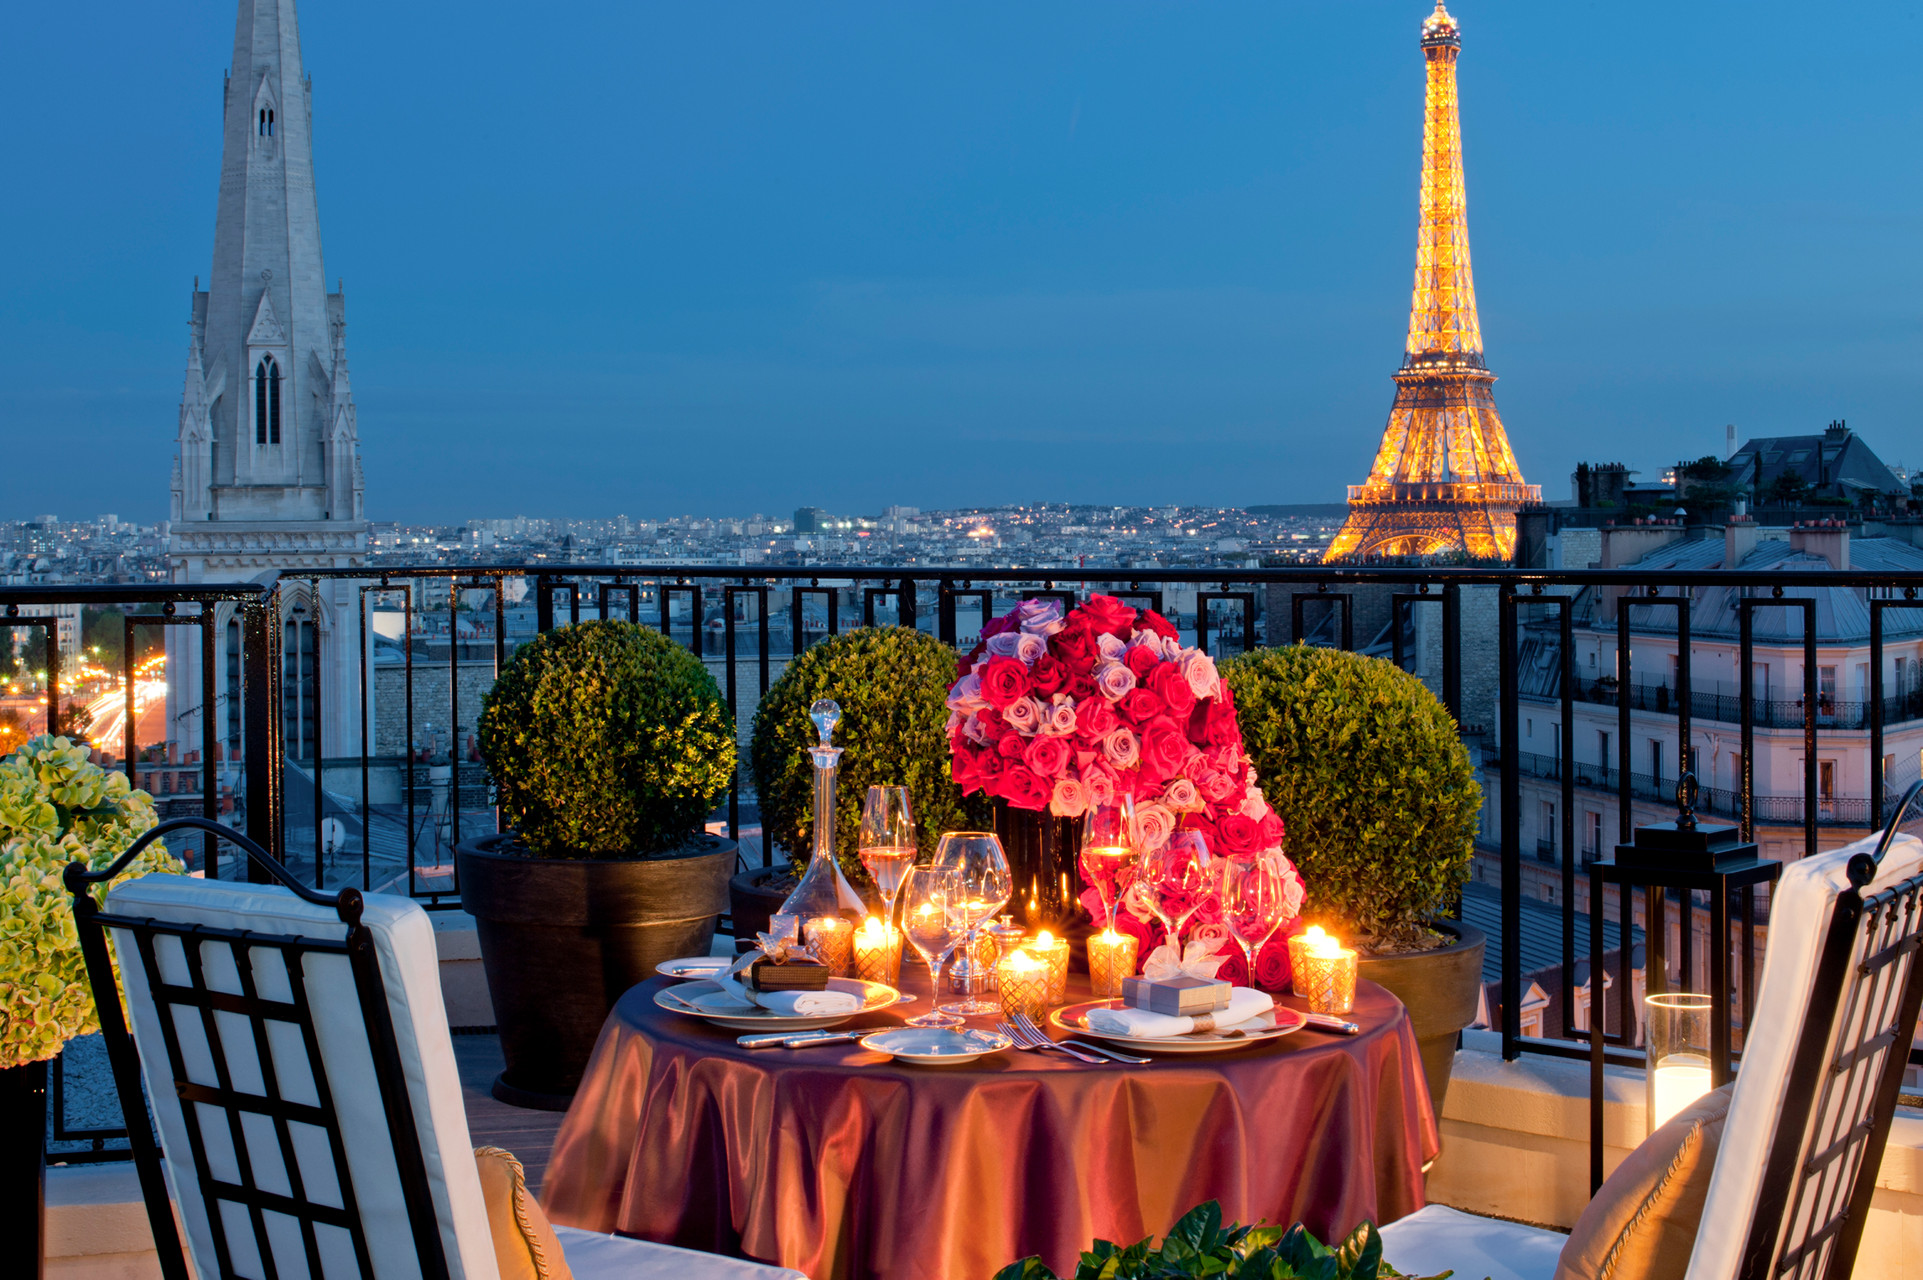 Luxury Travel: 5 Reasons Why Paris Should Be Your Next Destination luxury valentine's day gift ideas Luxury Valentine's Day Gift Ideas For 2019 luxury travel reasons why paris next destination valentines day luxury valentine's day gift ideas Luxury Valentine's Day Gift Ideas For 2019 luxury travel reasons why paris next destination valentines day